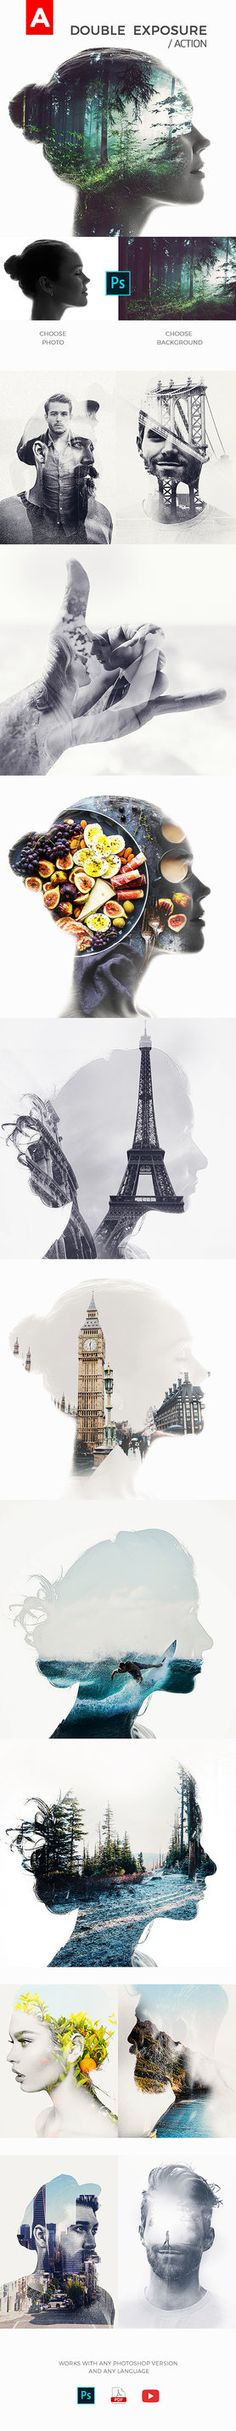 DOWNLOAD: goo.gl/rebNpGDouble Exposure Action– This double exposure action is a photoshop action which uses uses 2 photographs and blends them in to create a very nice doubl...